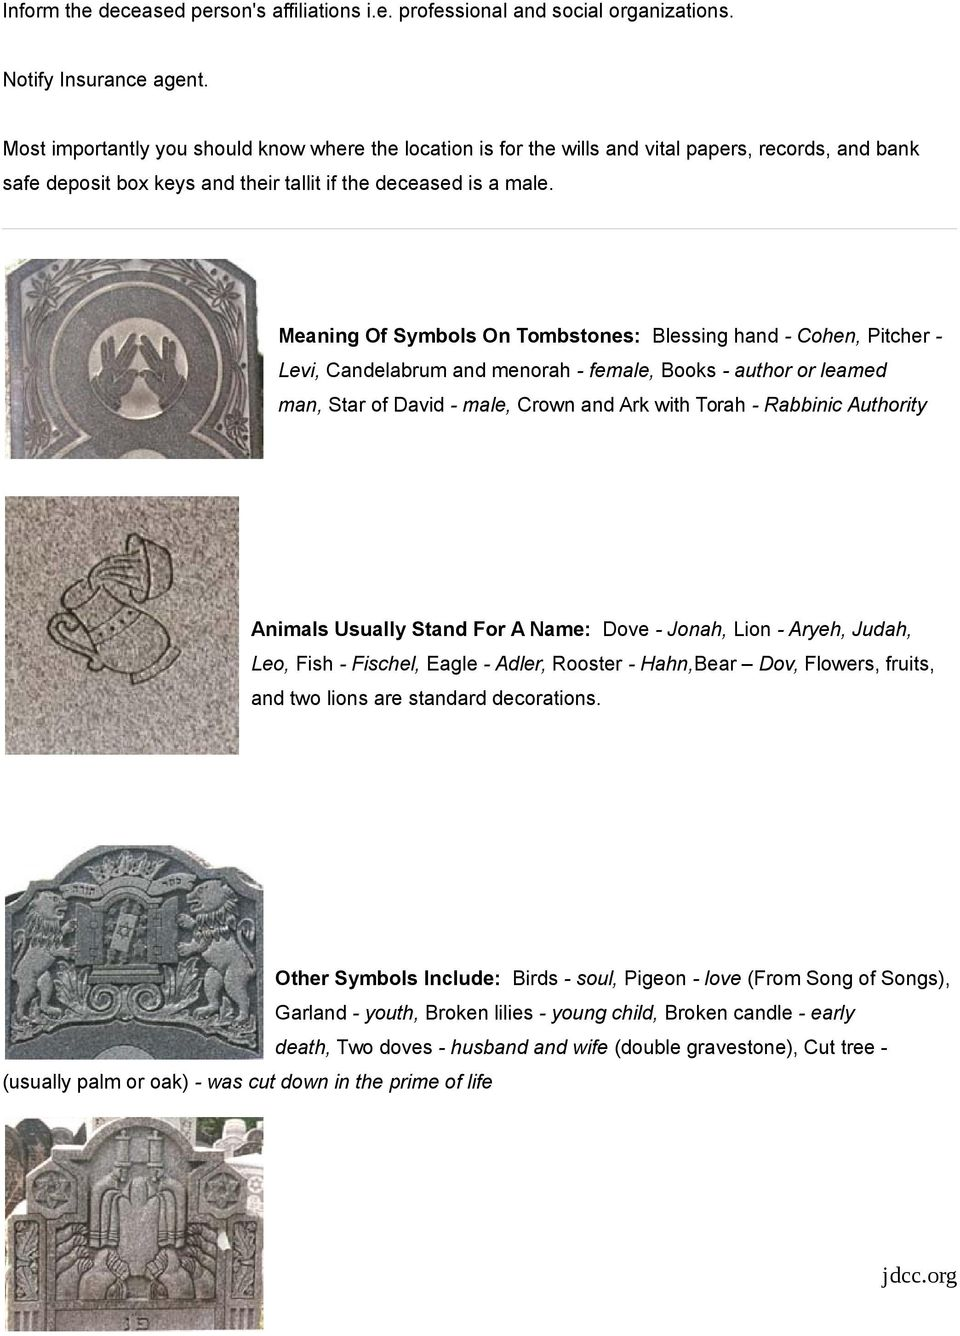 Meaning Of Symbols On Tombstones: Blessing hand - Cohen, Pitcher - Levi, Candelabrum and menorah - female, Books - author or leamed man, Star of David - male, Crown and Ark with Torah - Rabbinic